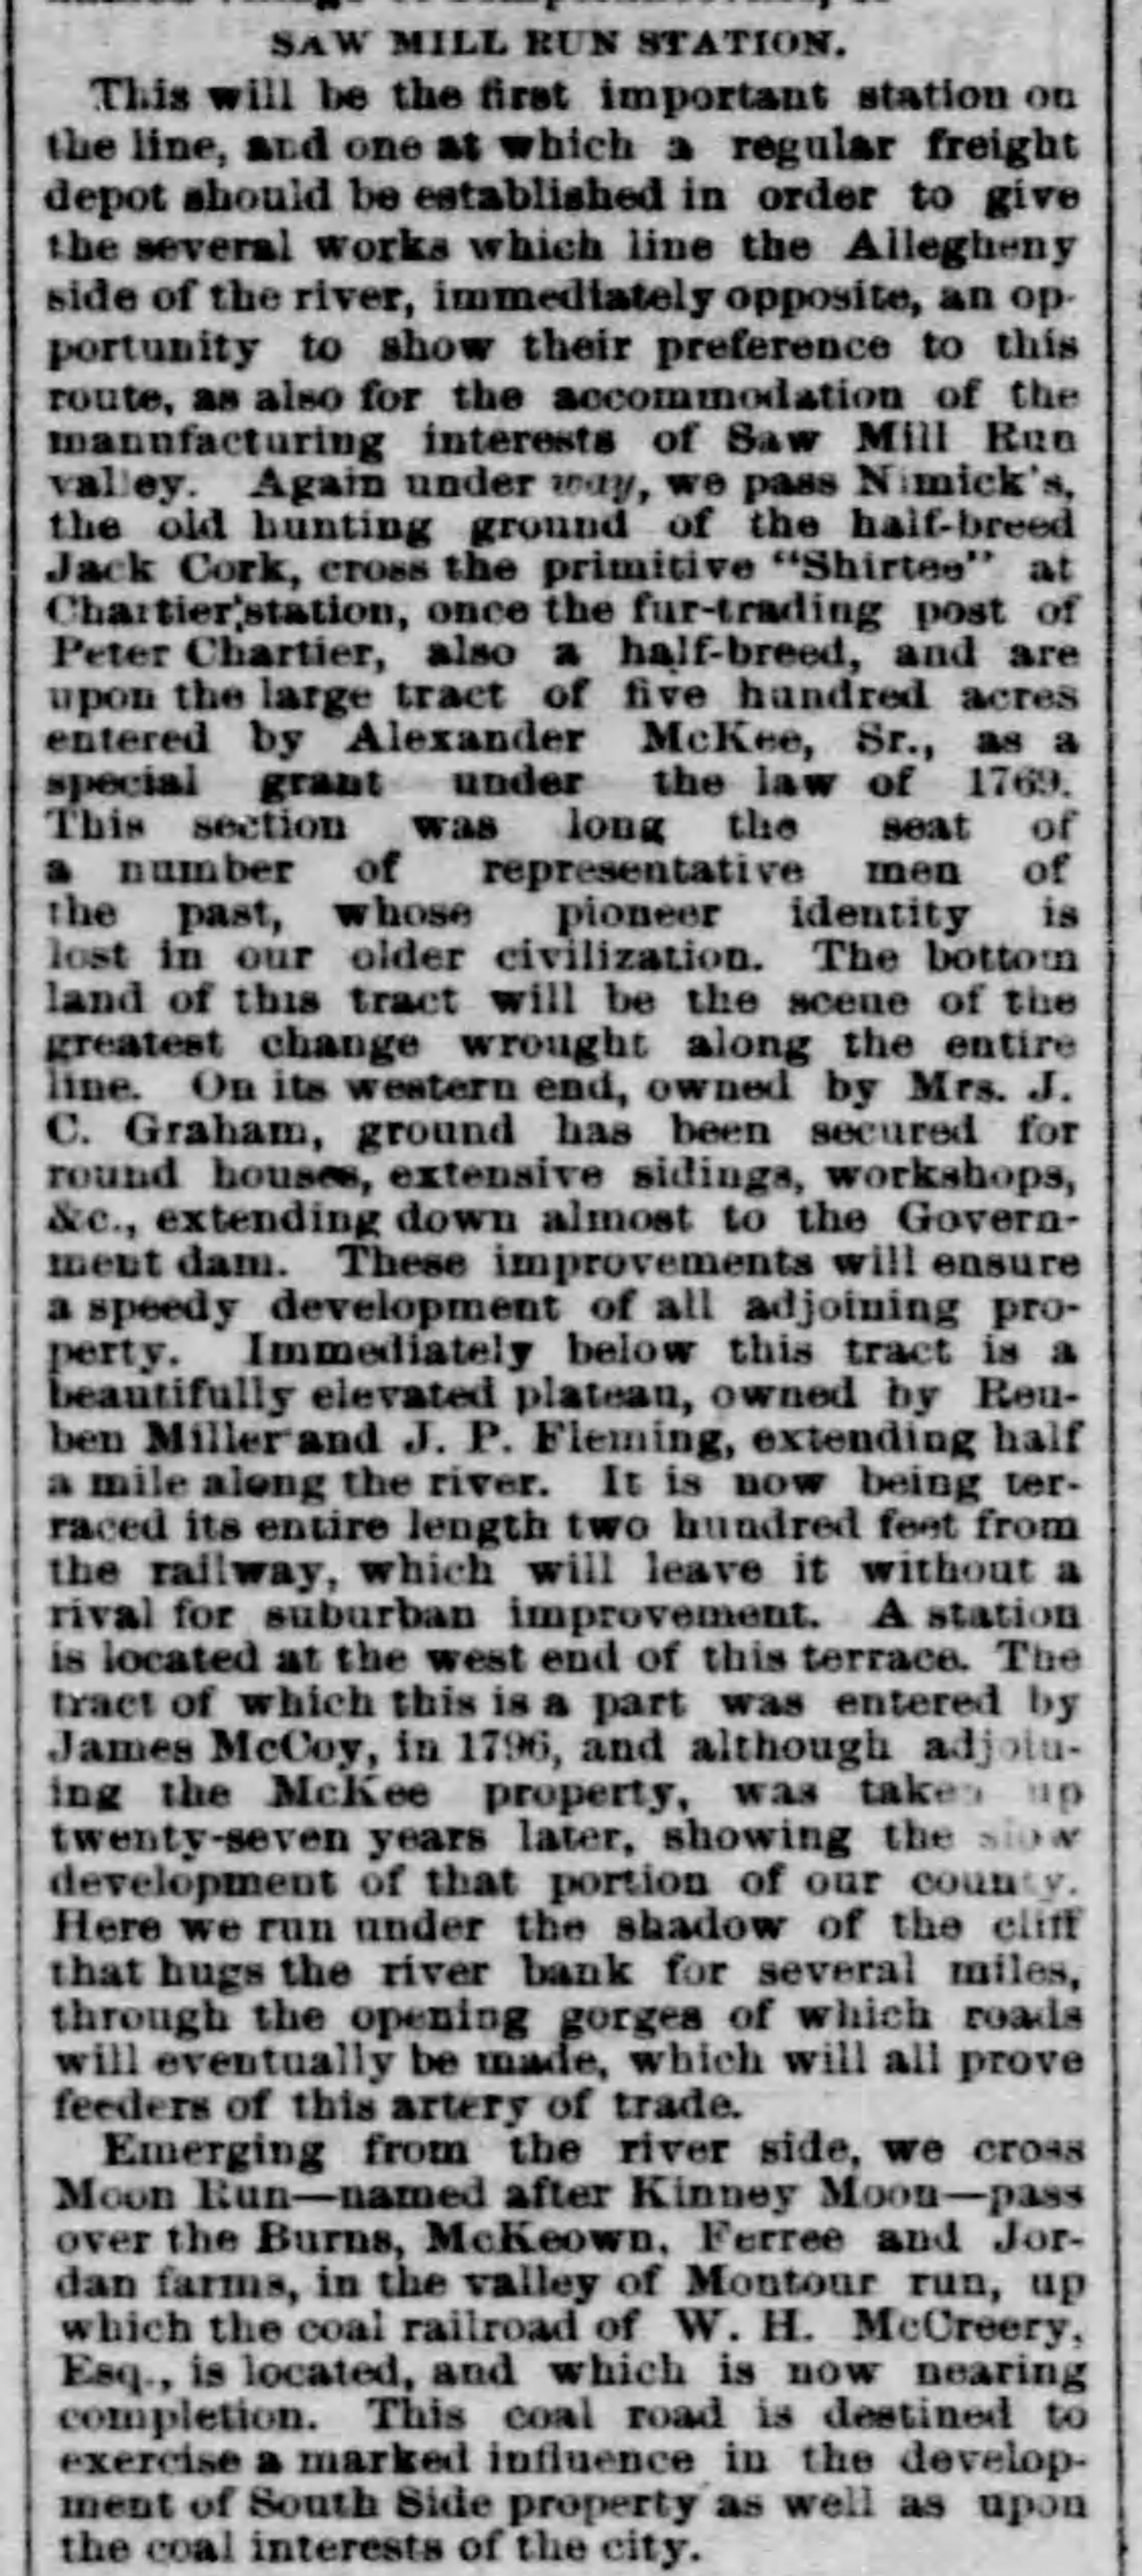 Our New Outlet - Pittsburgh_Post_Gazette_Wed__Feb_26__1879(d).jpg